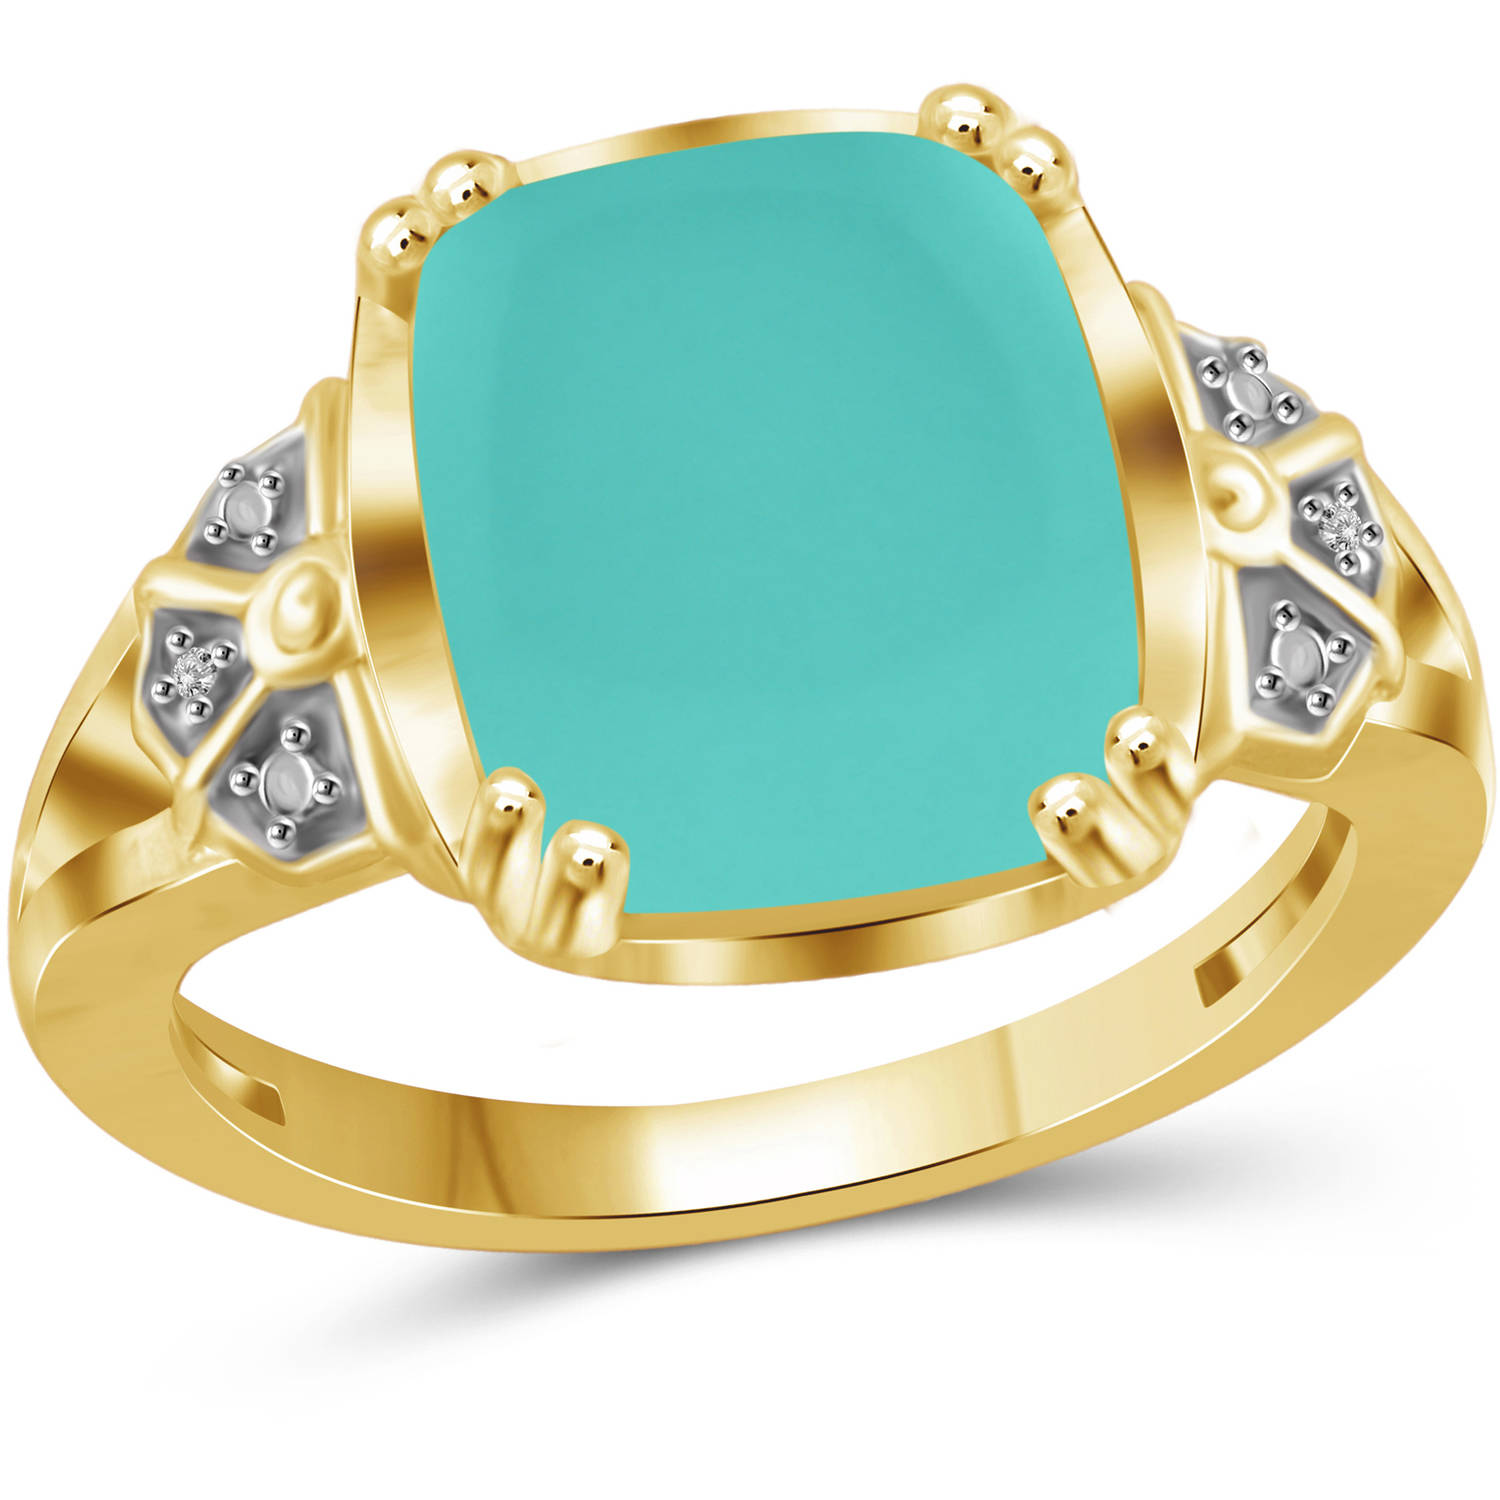 JewelersClub 5 Carat T.G.W. Chalcedony and White Diamond Accent 14kt Gold over Silver Fashion Ring by JewelersClub